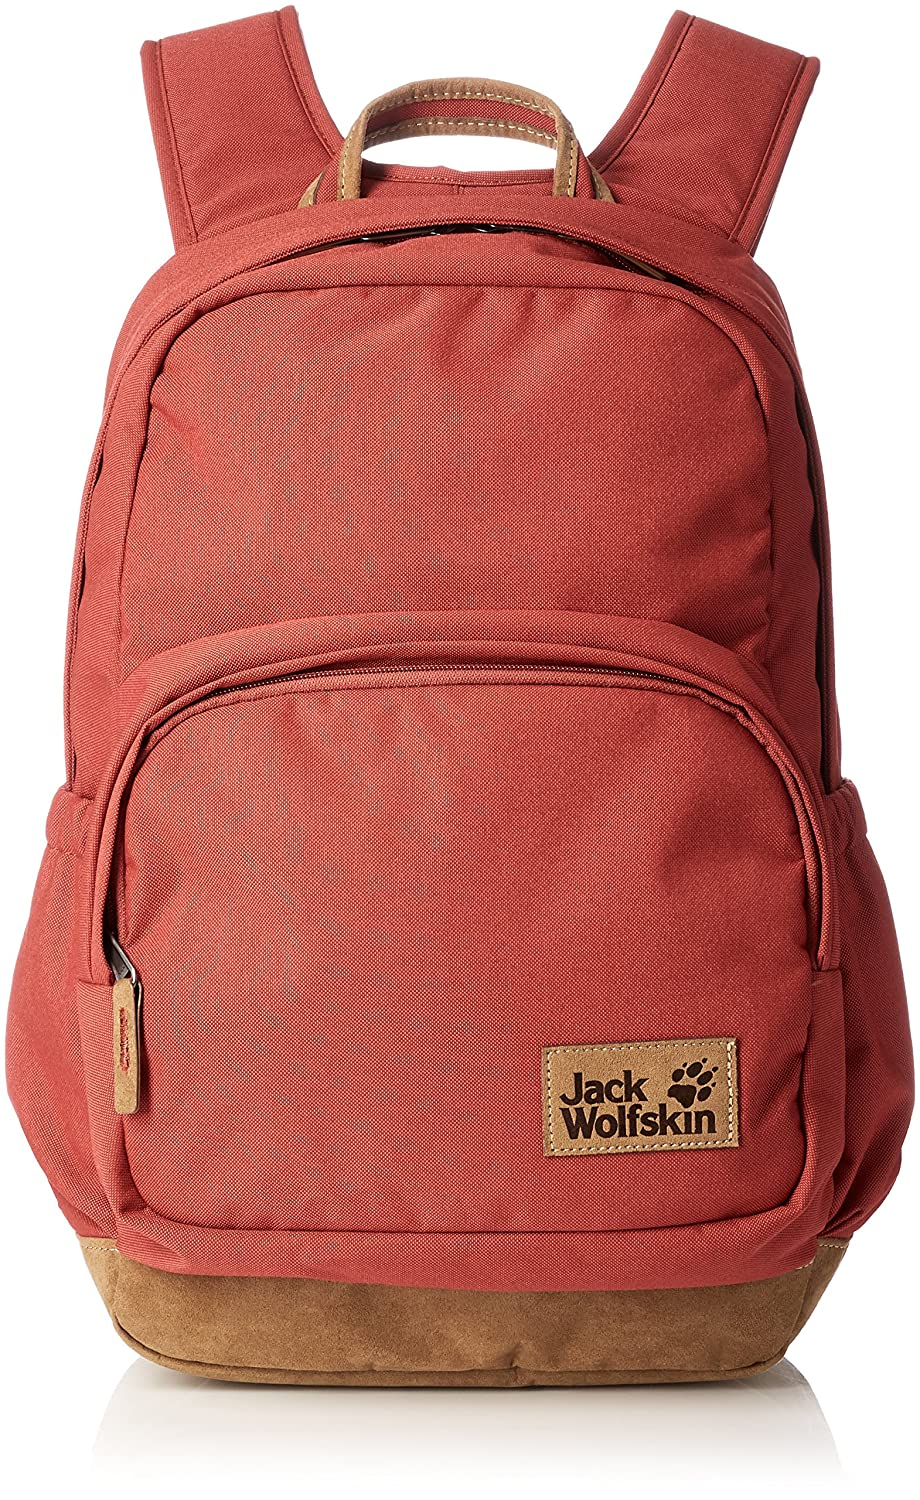 659f29595d Amazon.com: Jack Wolfskin Croxley Hiking Daypacks, Black, One Size: Sports  & Outdoors